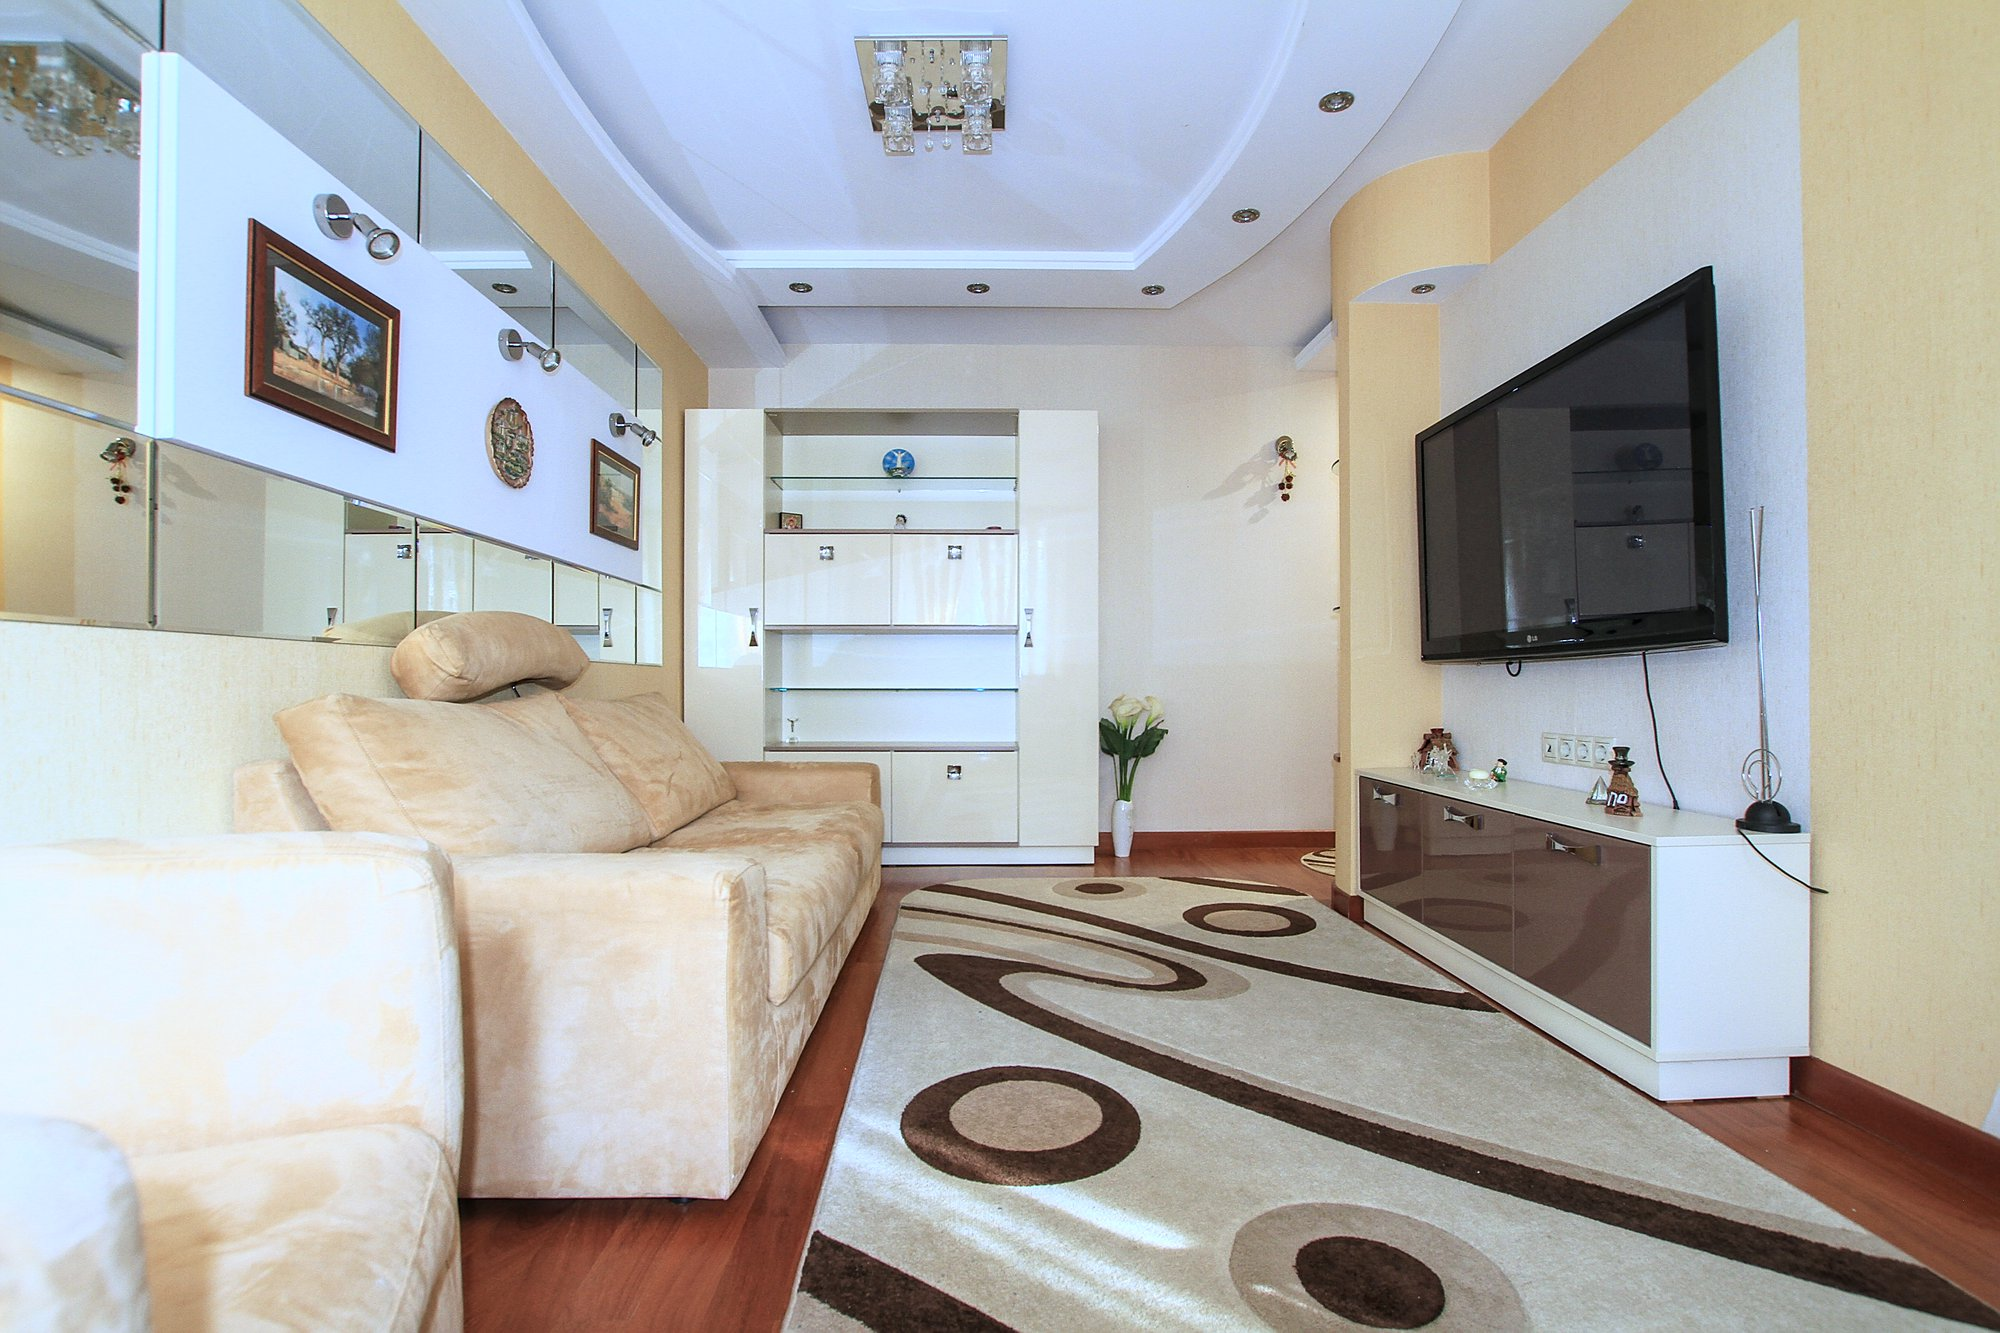 A-40-3-room-apartment-for-rent-in-Chisinau-Botanica.jpg